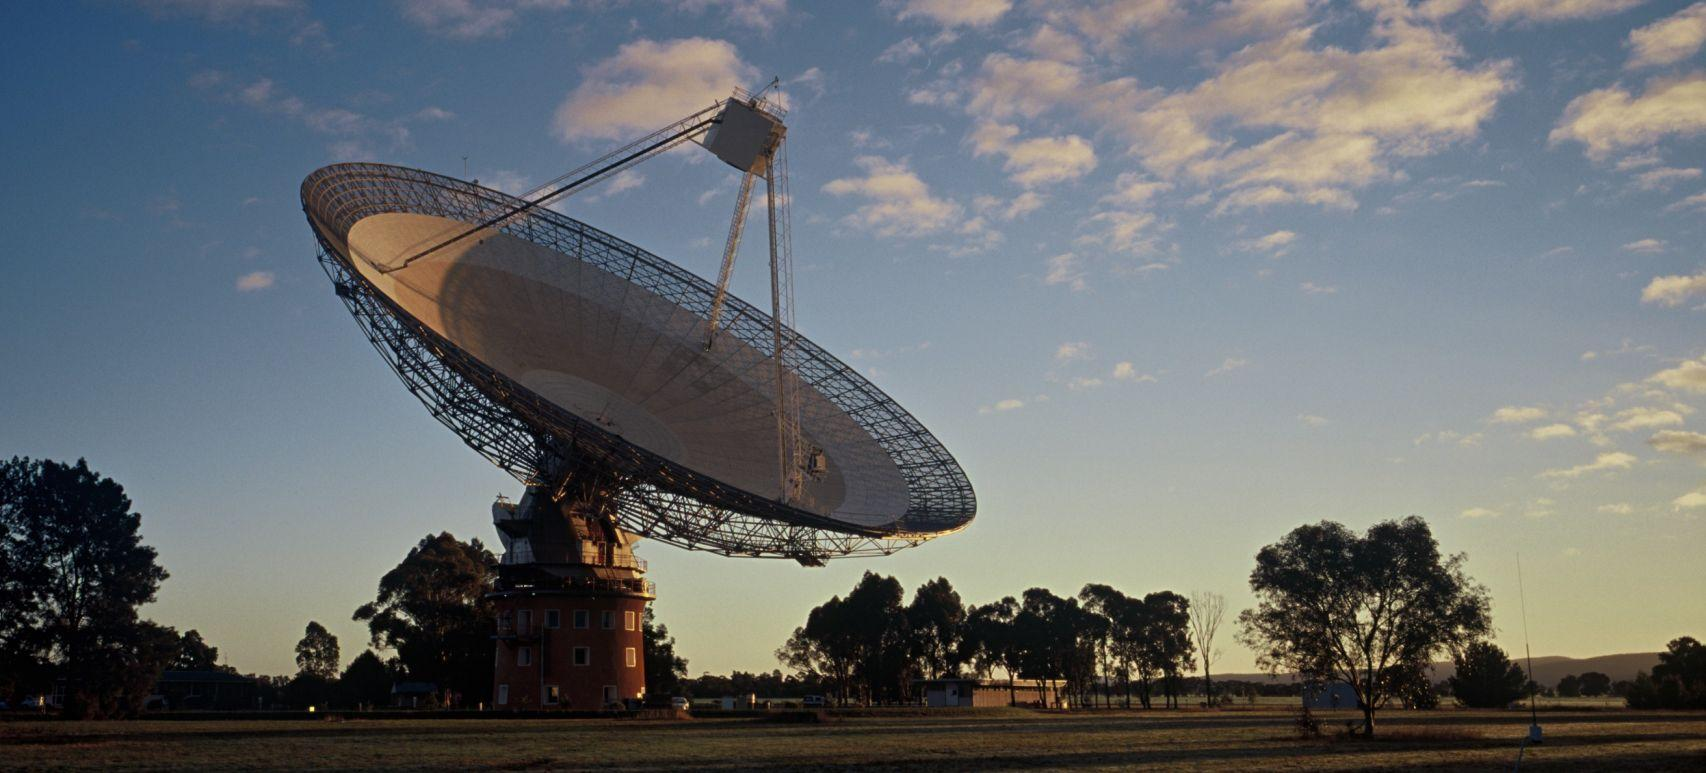 ASKAP Science Data Archive: Users and Requirements CSIRO ASTRONOMY